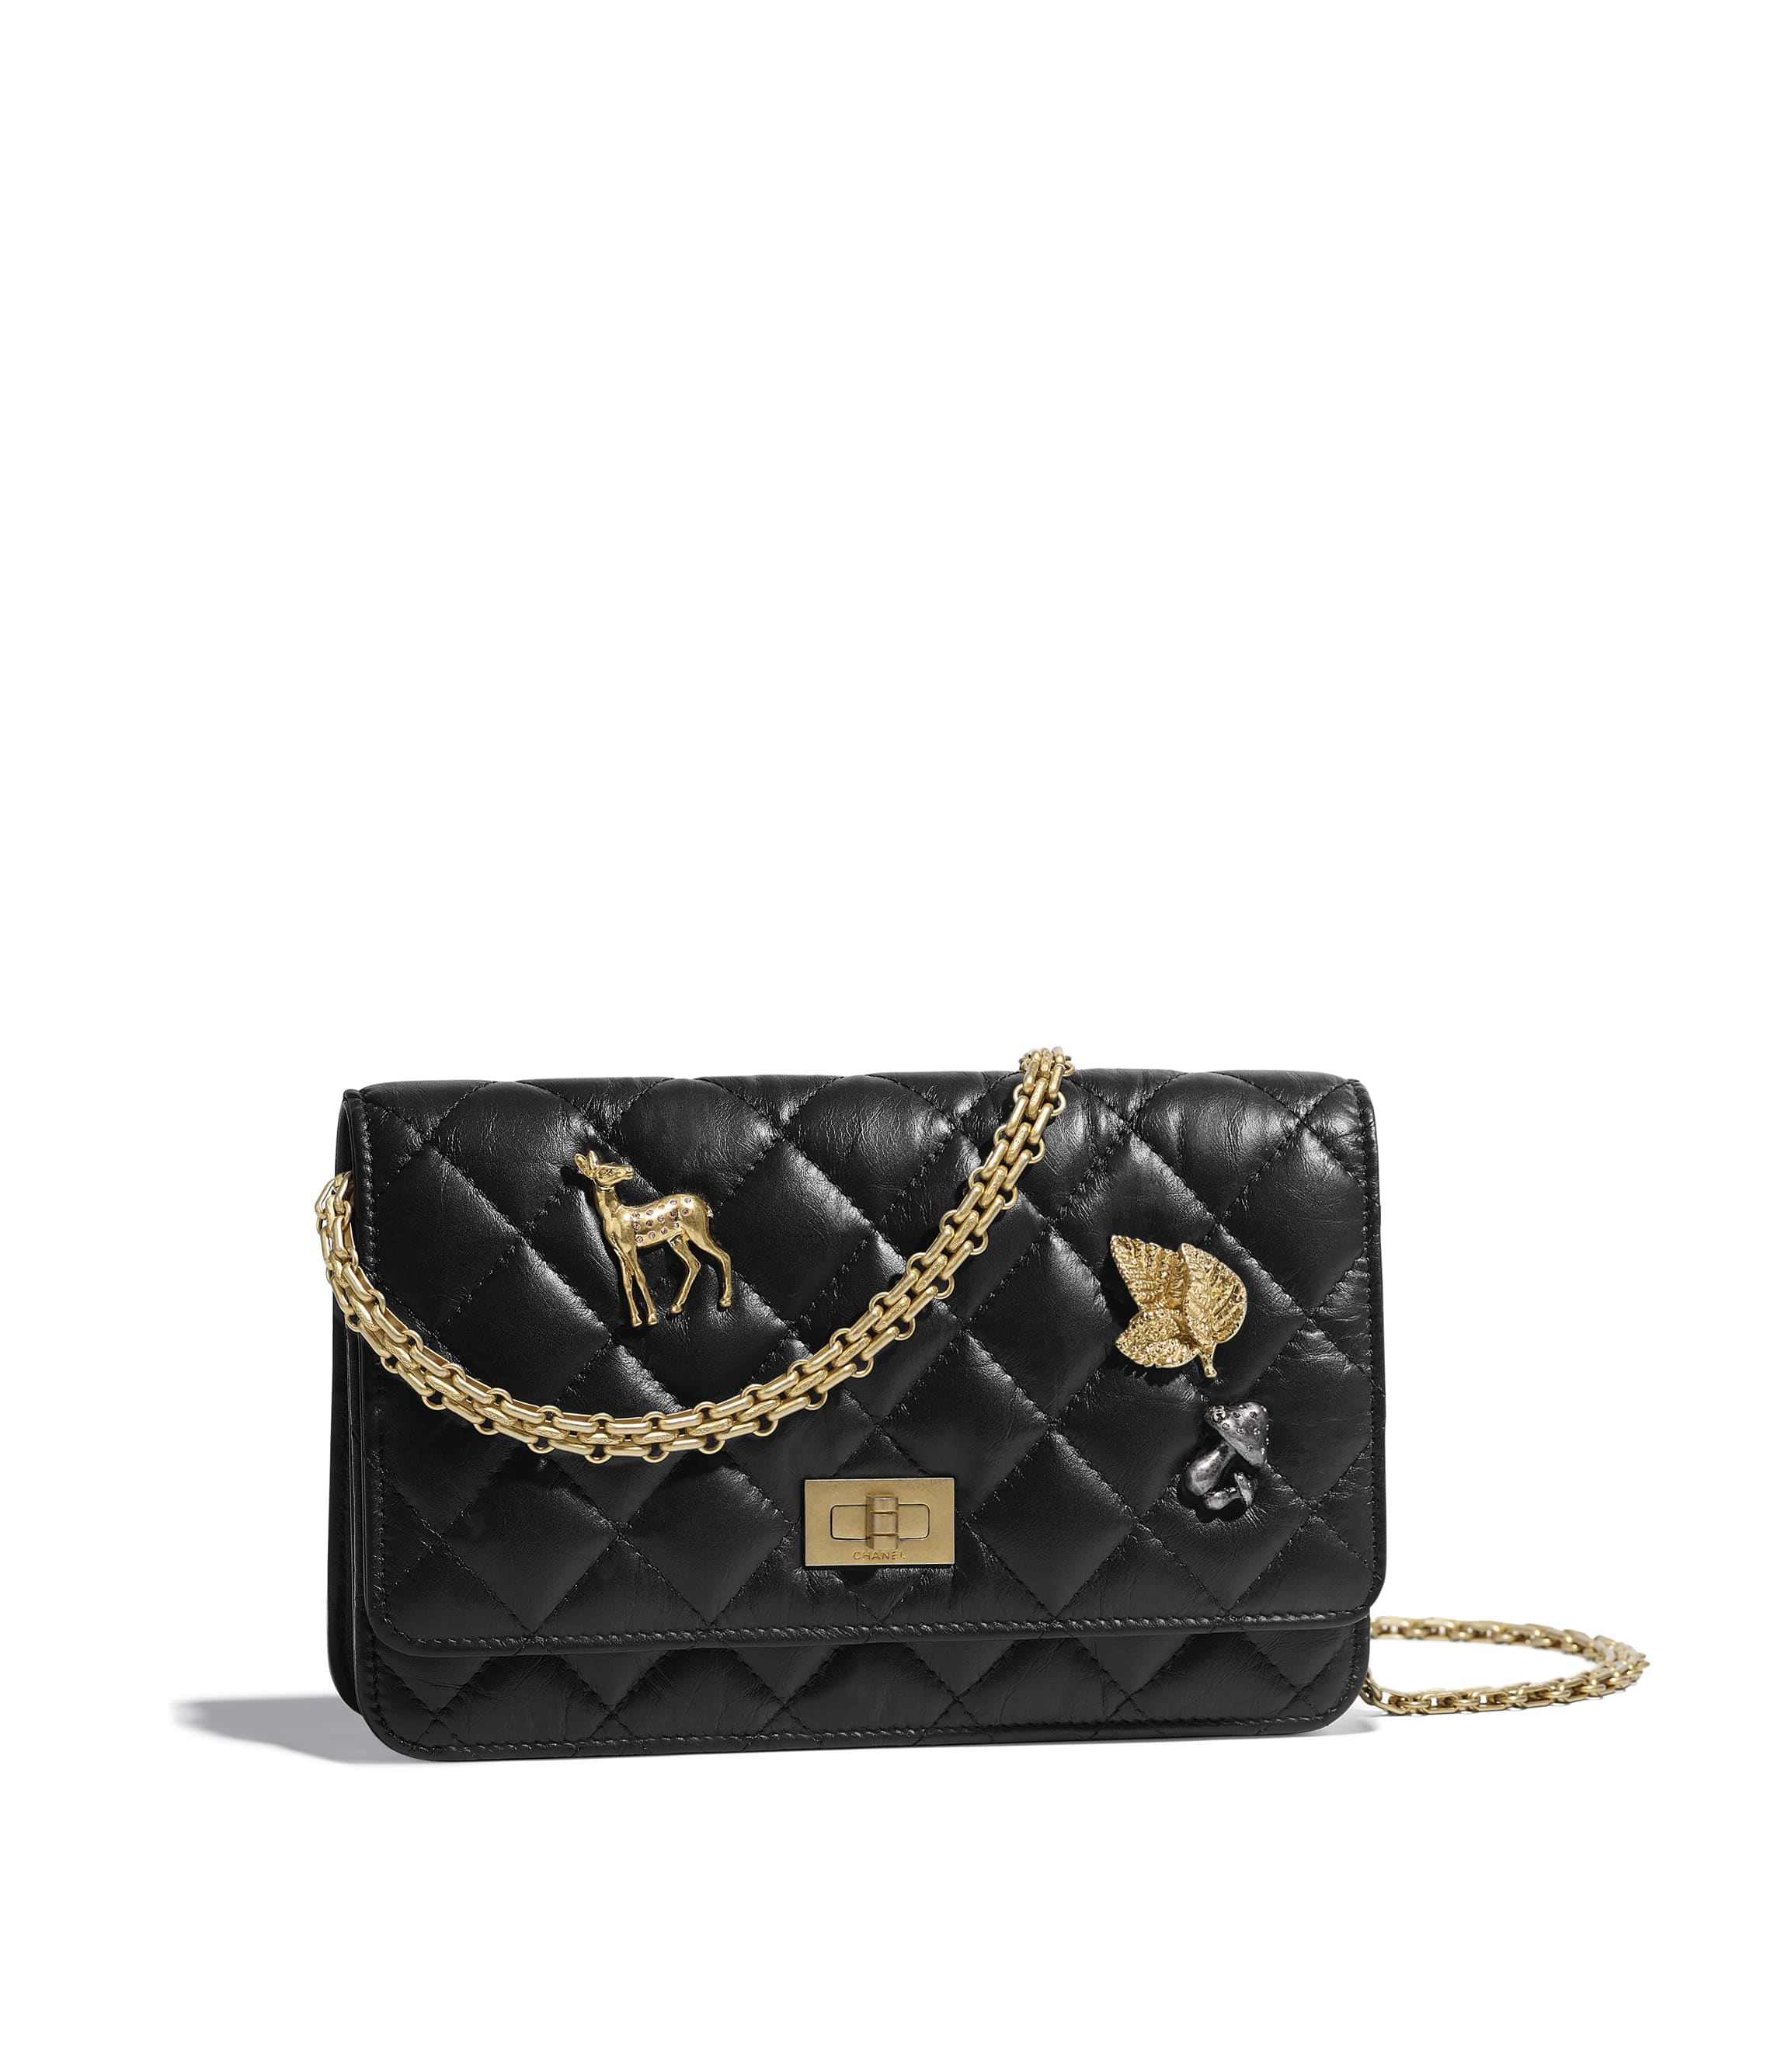 Chanel 2.55 Wallet On Chain